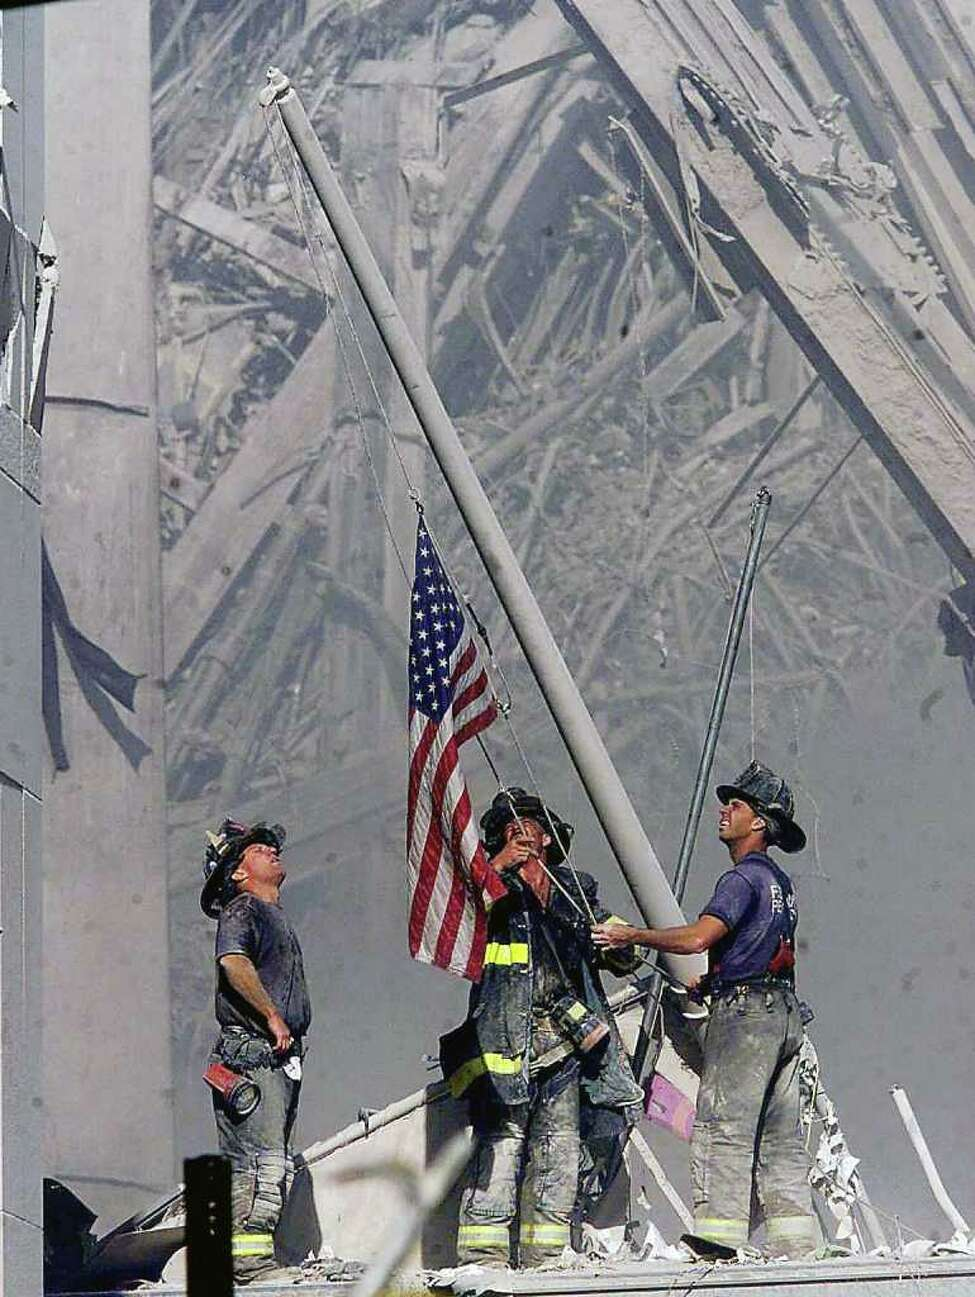 Brooklyn firefighters George Johnson, left, of ladder 157, Dan McWilliams, center, of ladder 157, and Billy Eisengrein, right, of Rescue 2, raise a flag at the World Trade Center in New York, in this Sept. 11, 2001, file photo, as work at the site continues after hijackers crashed two airliners into the center.